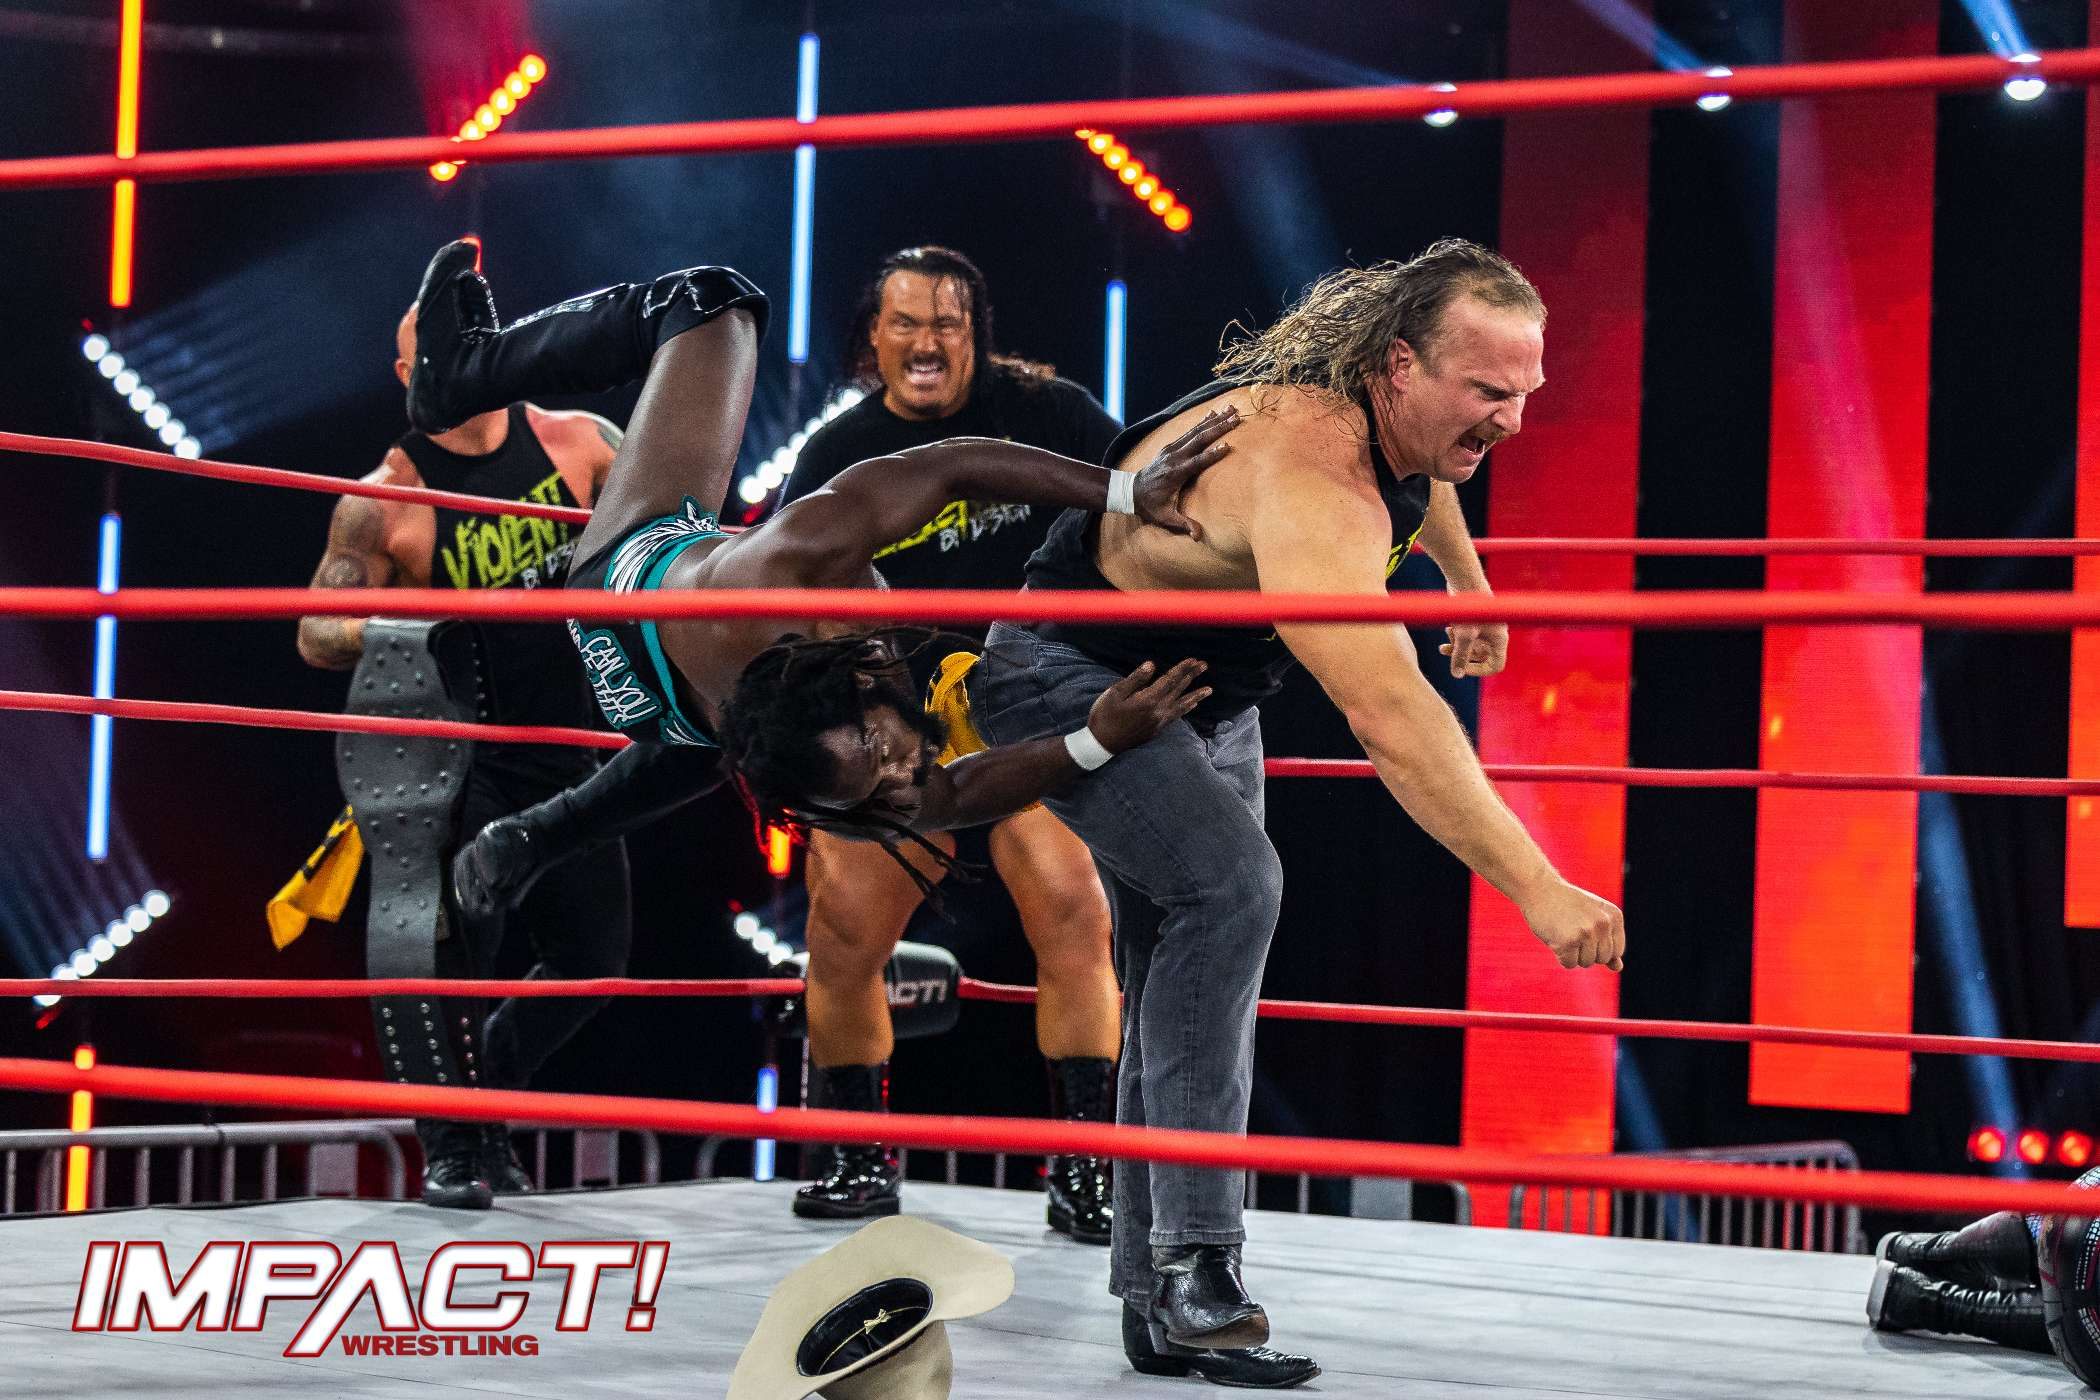 TJP and Fallah Bahh vs Rich Swann and Willie Mack